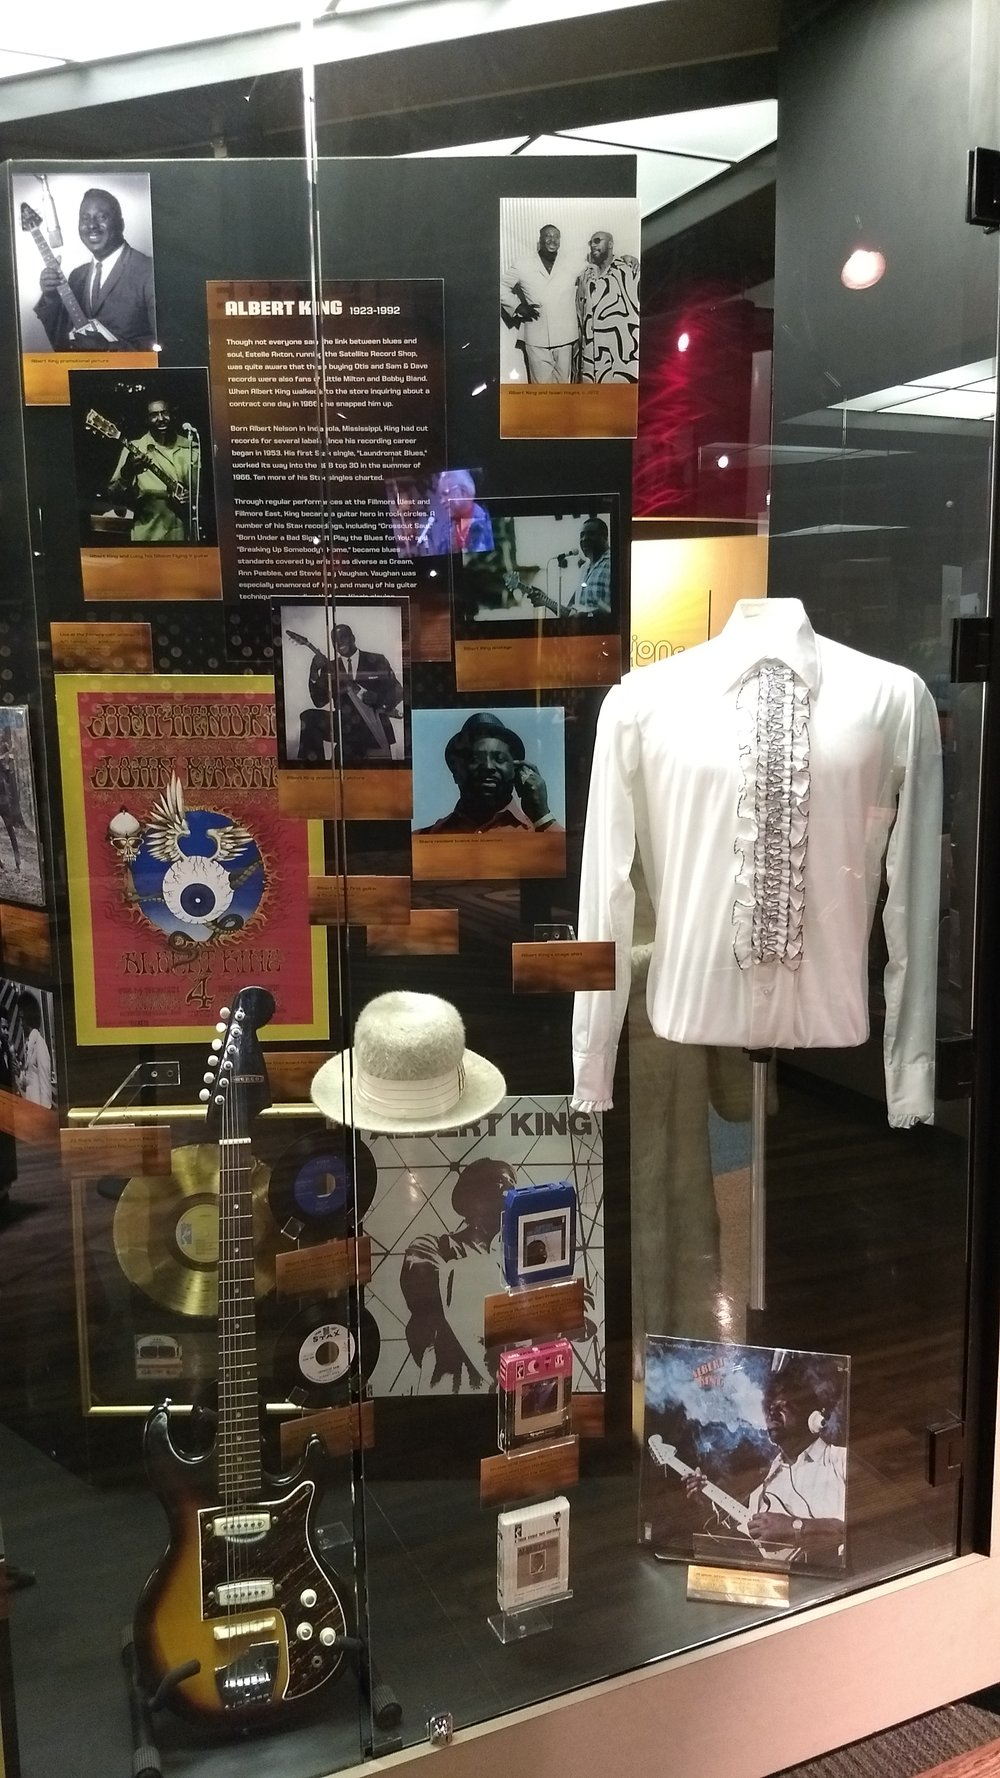 Albert King exhibit